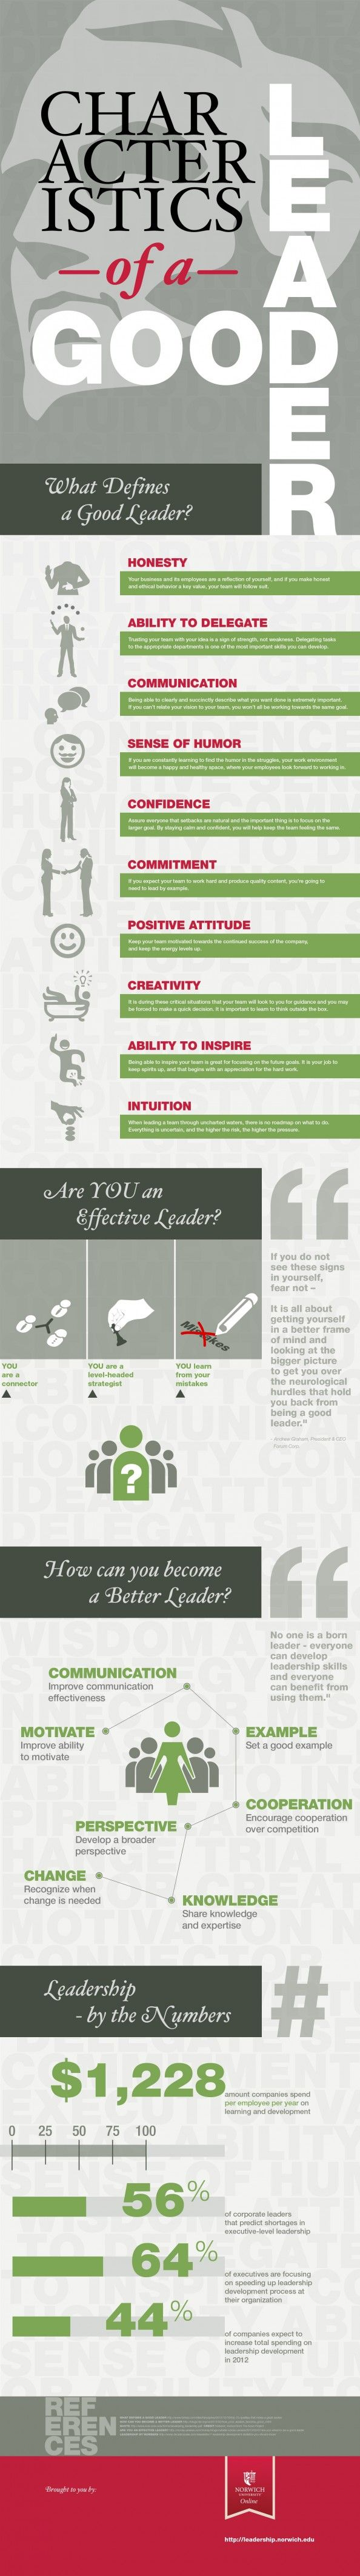 To be a successful entrepreneur, you must also be a good leader. Characteristics of a Good Leader #infographic